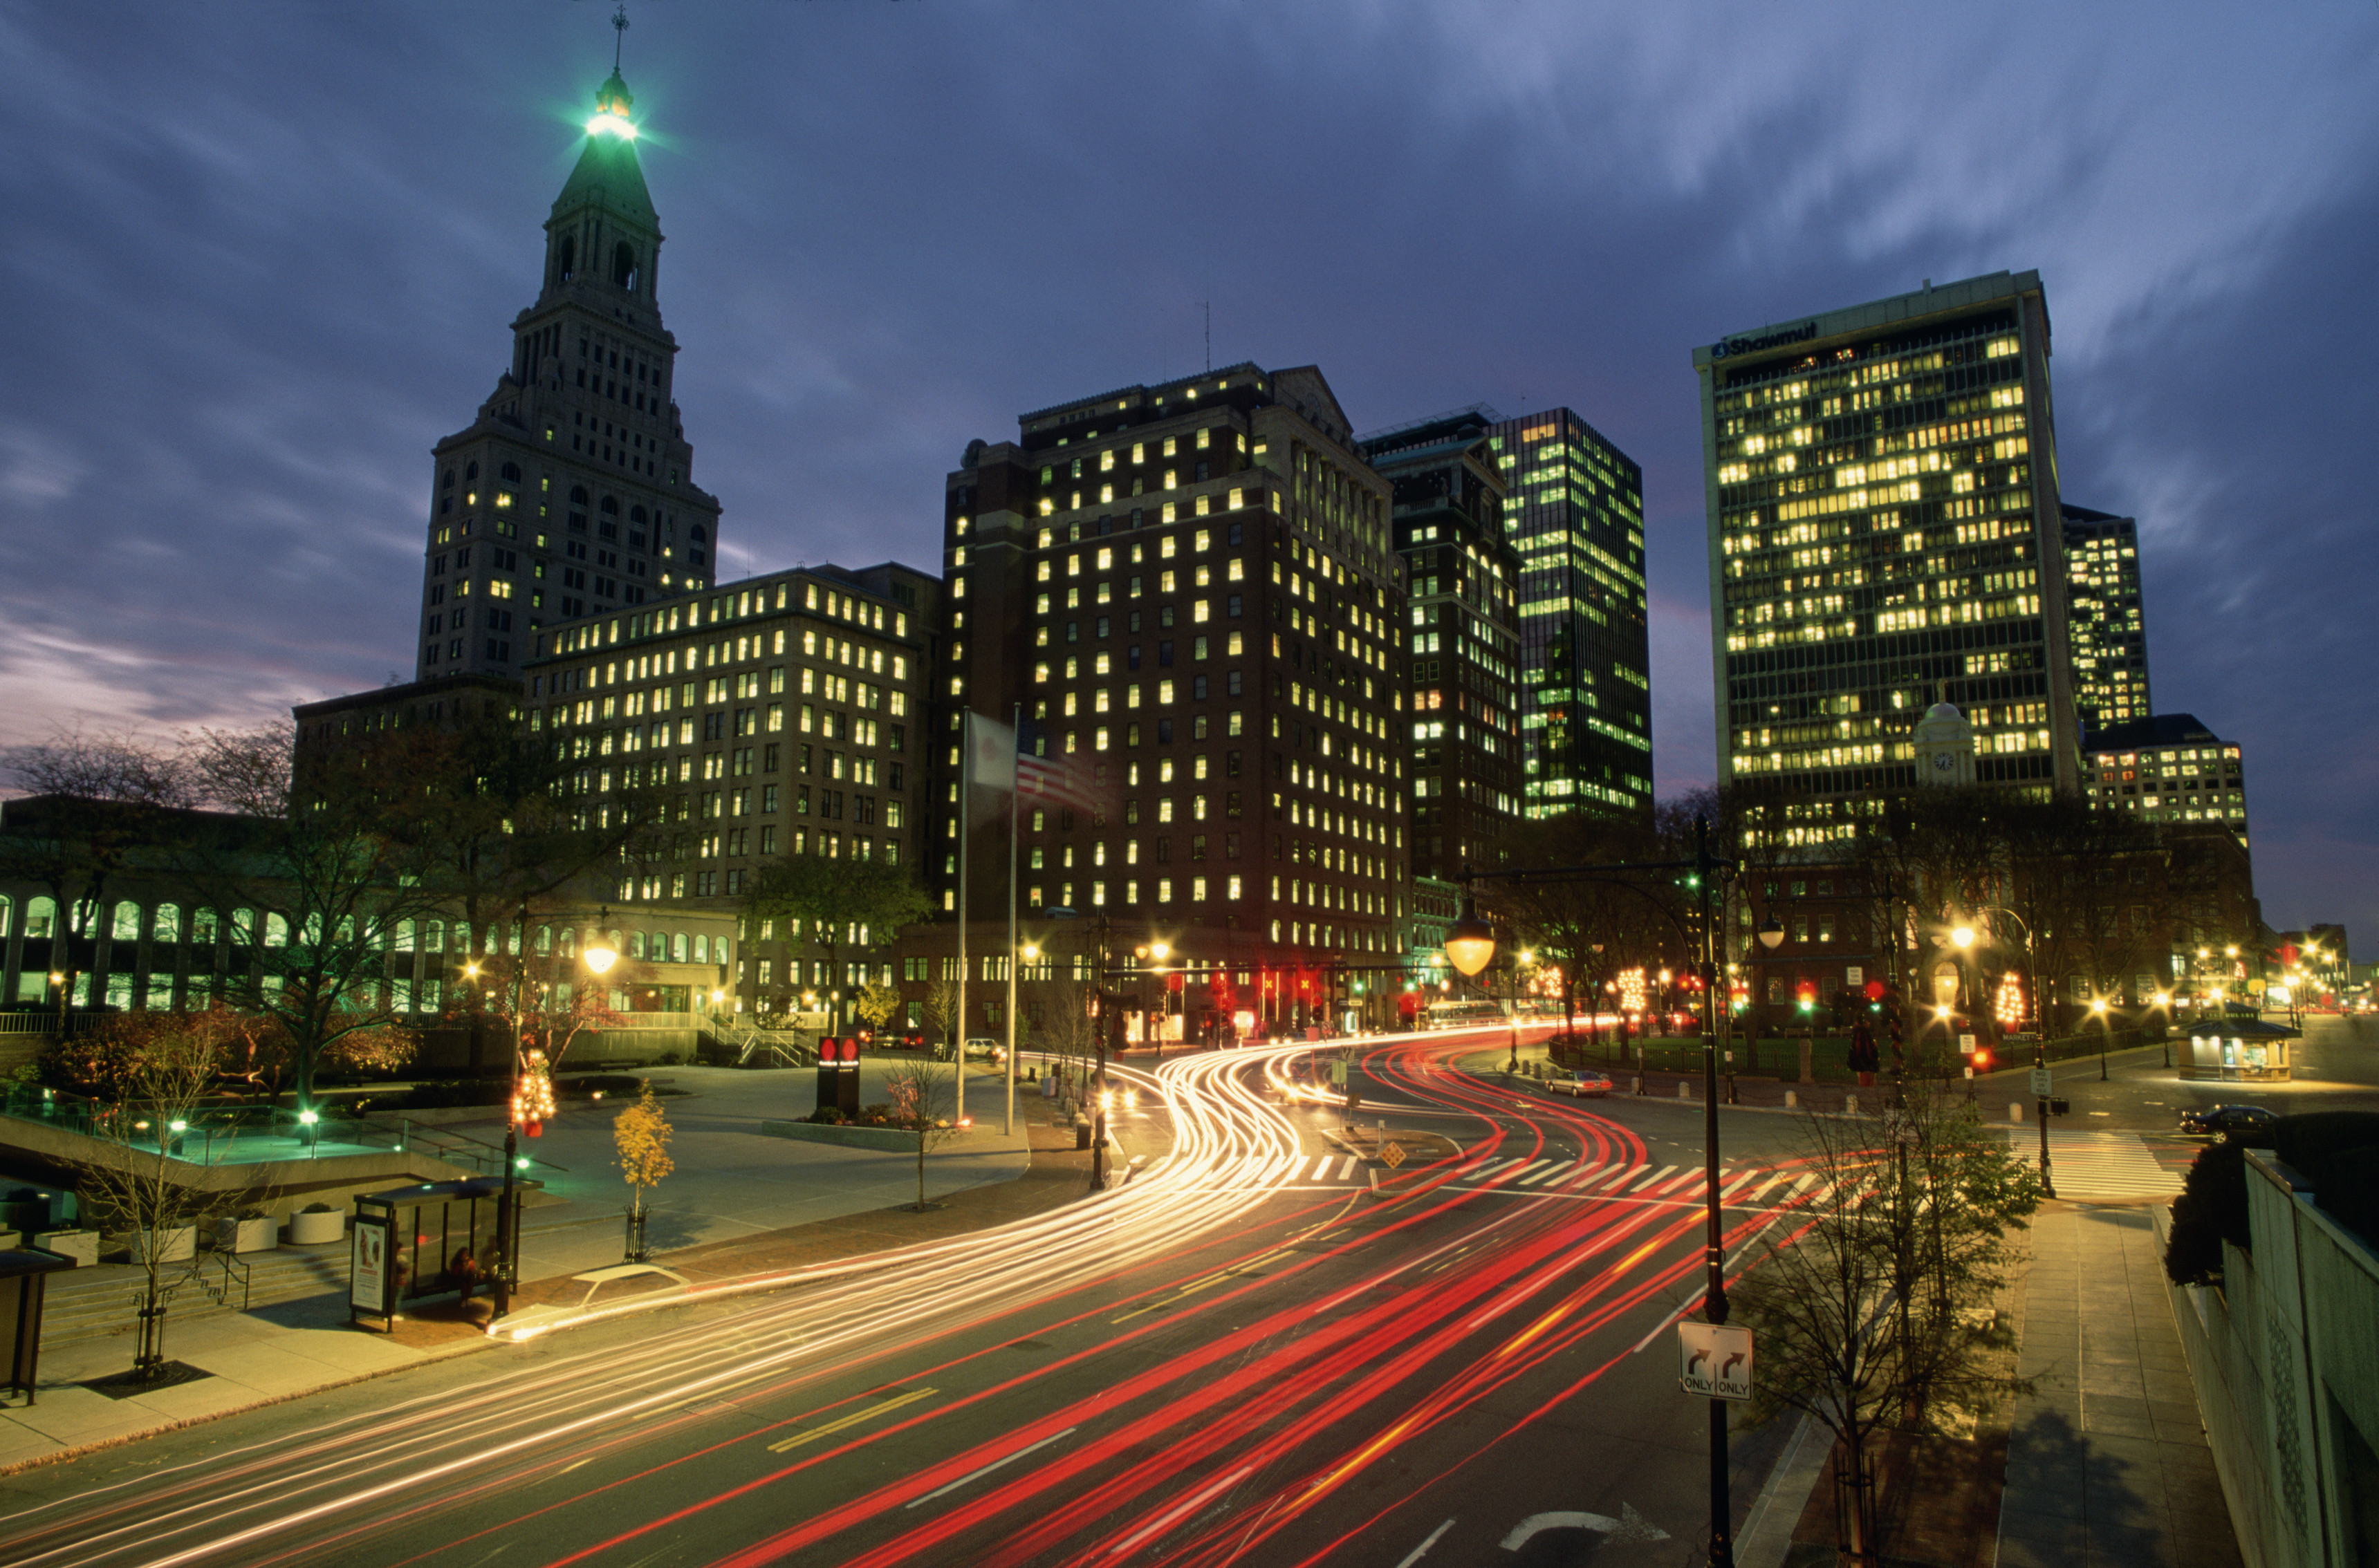 downtown-hartford-at-night - Connecticut Pictures ...